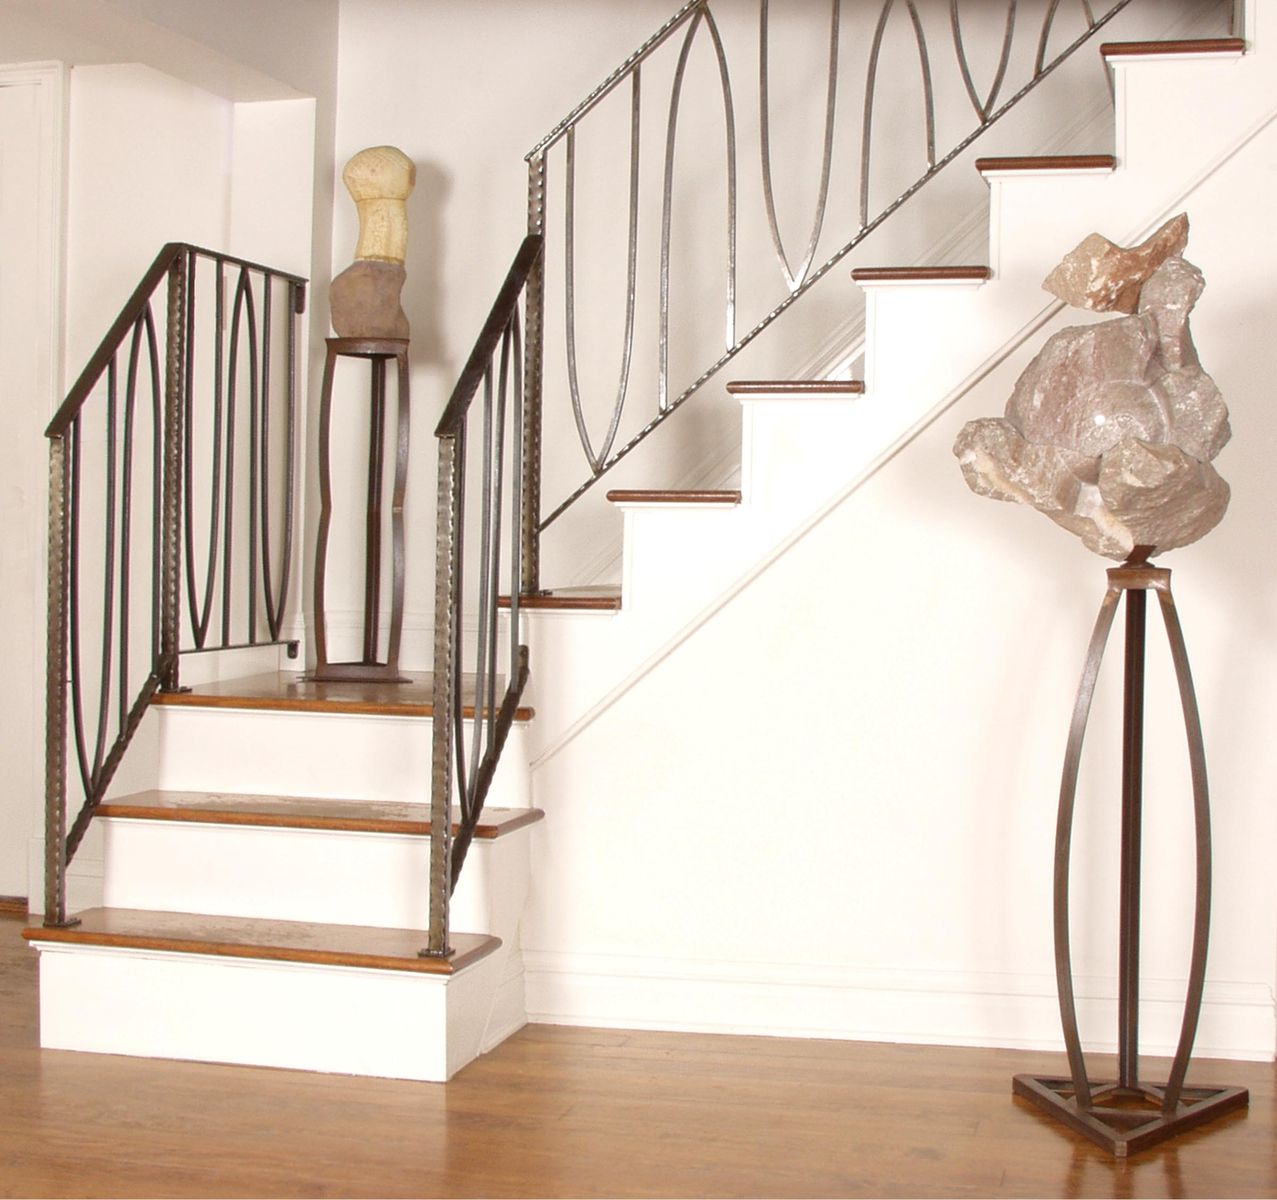 Balustrade Tangga Hand Crafted Anahata Stair Railing By Eric David Laxman